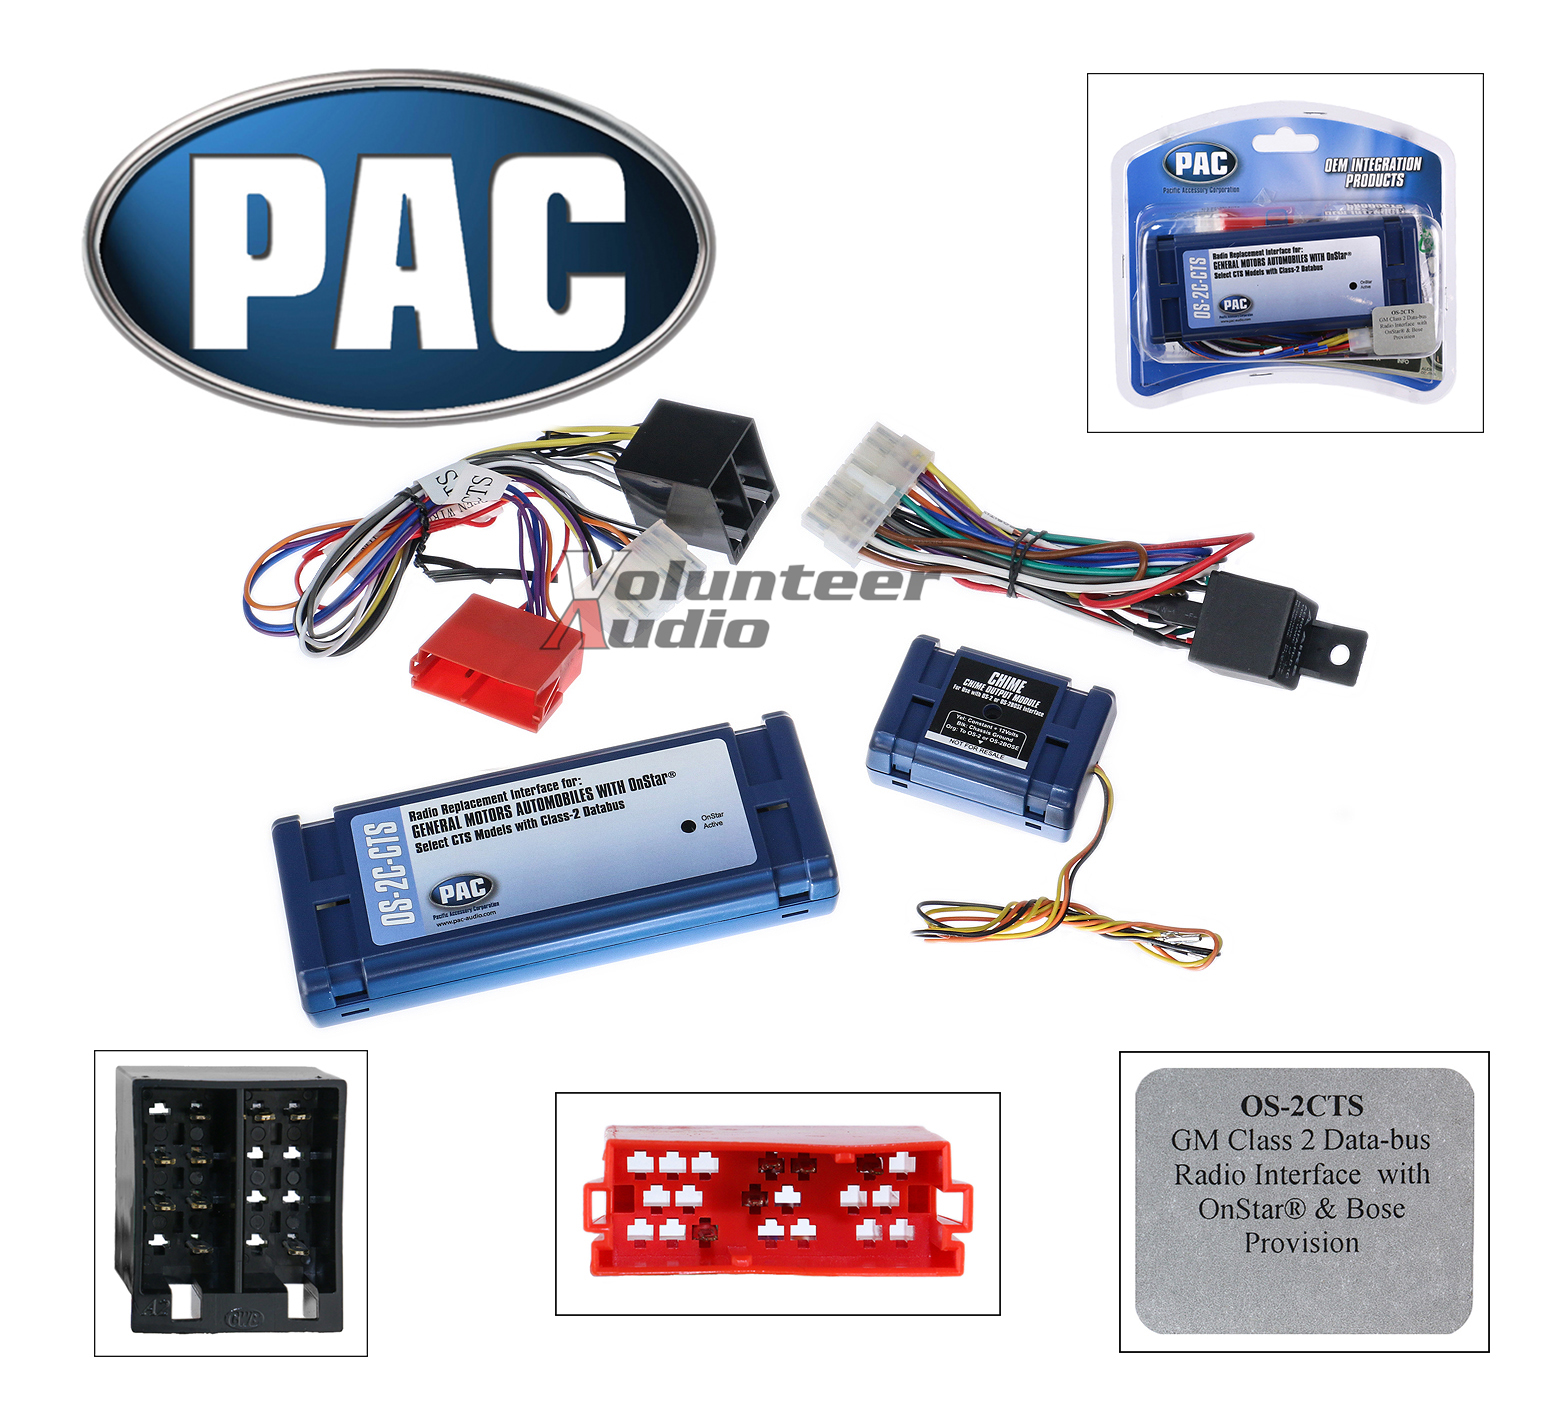 pac os 2c cts onstar radio replacement wiring interface harness rh ebay com pac wiring harness vs axxess pac wiring harness diagram